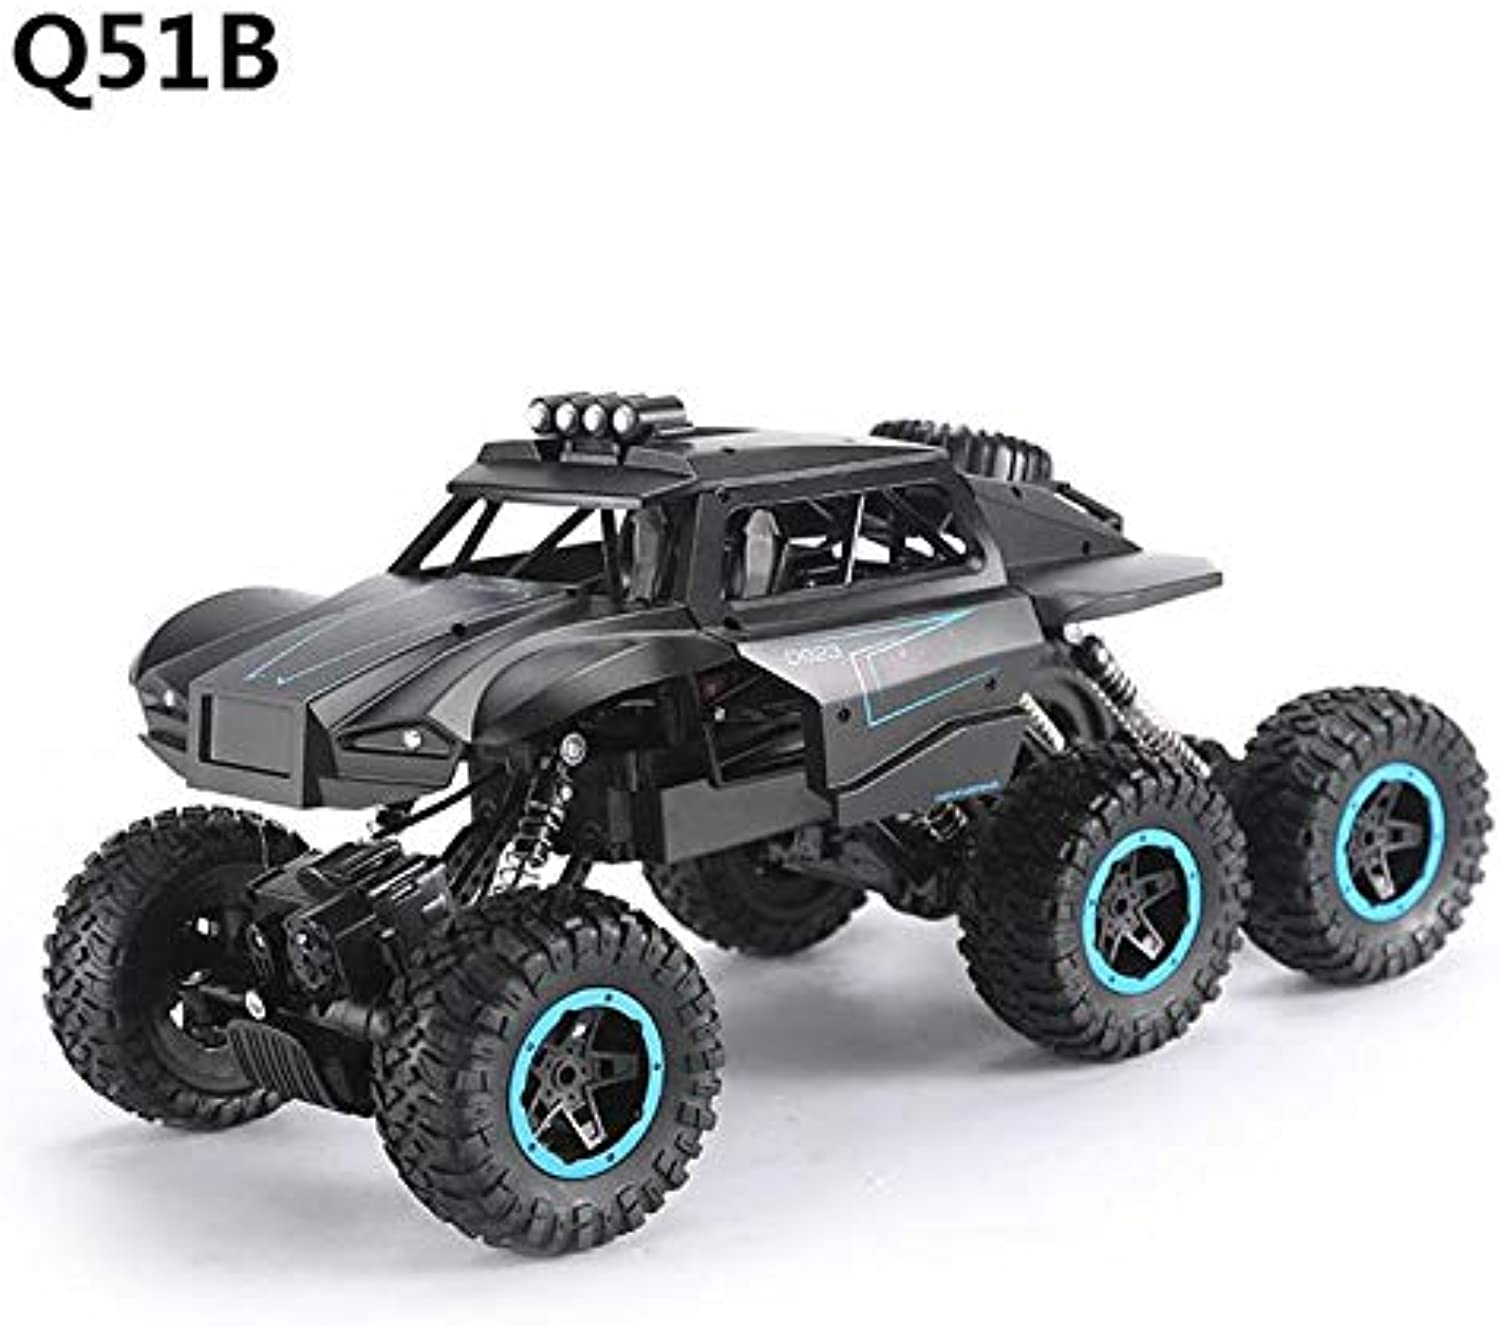 Generic Form JJRC Q51 RC Car 2.4G Off Road MAX 6WD RTR Racing Truck Car Six Wheels Brushed Remote Control Climbing Car Toy with 2battery Q51B2battery